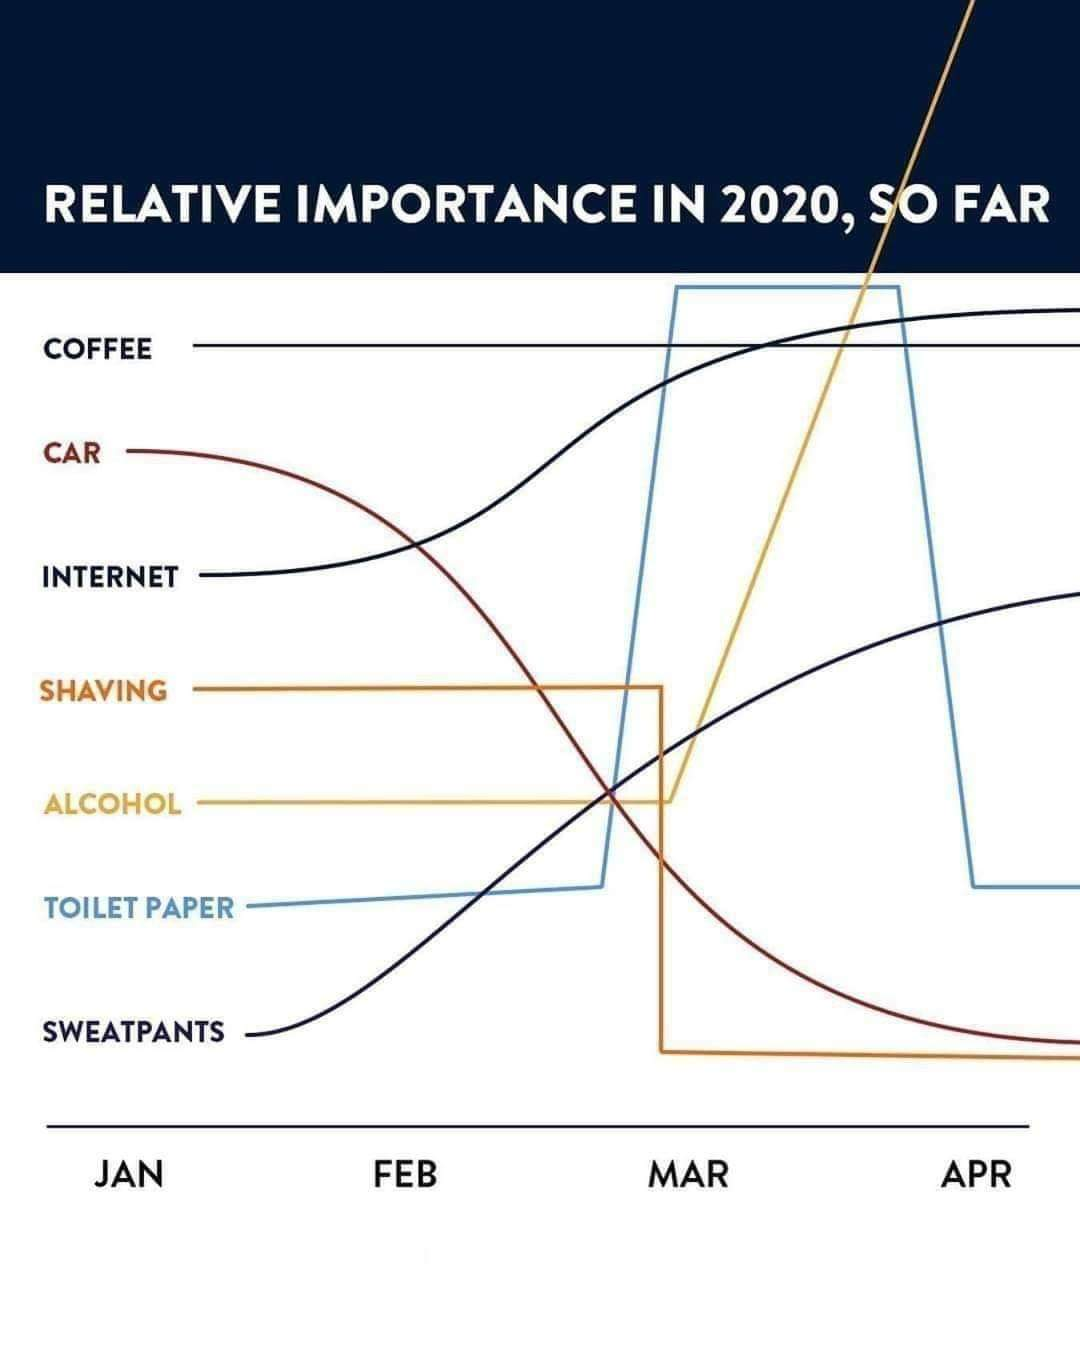 Relative importance graph